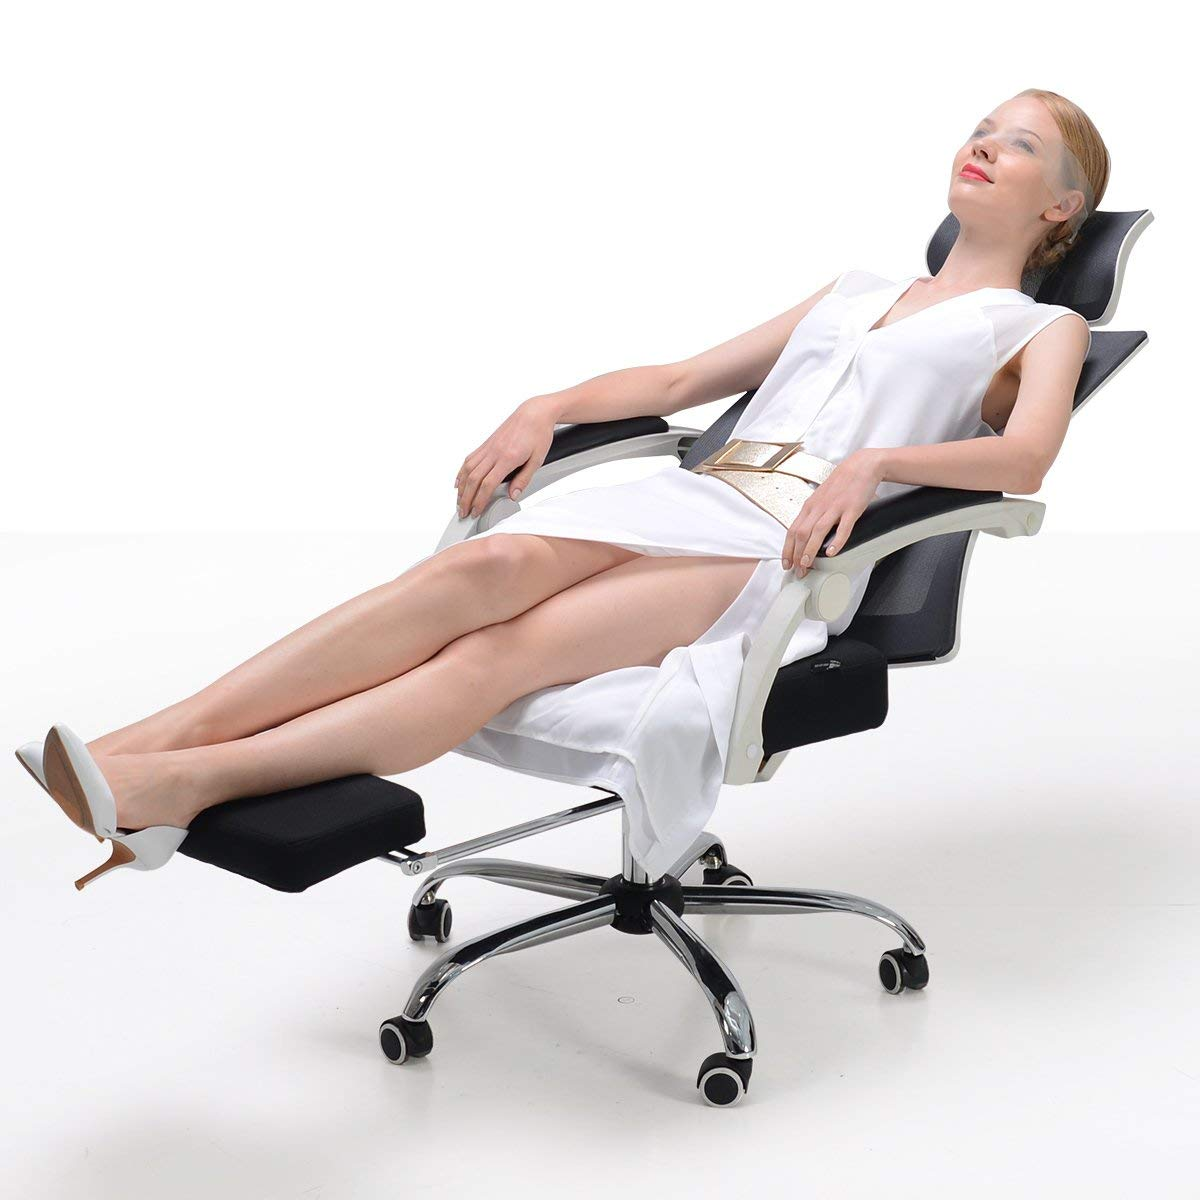 Hbada Ergonomic Office Recliner Chair - High Back Desk Chair Racing Style with Lumbar Support - Height Adjustable Seat, Headrest- Breathable Mesh Back - Soft Foam Seat Cushion with Footrest, White by Hbada